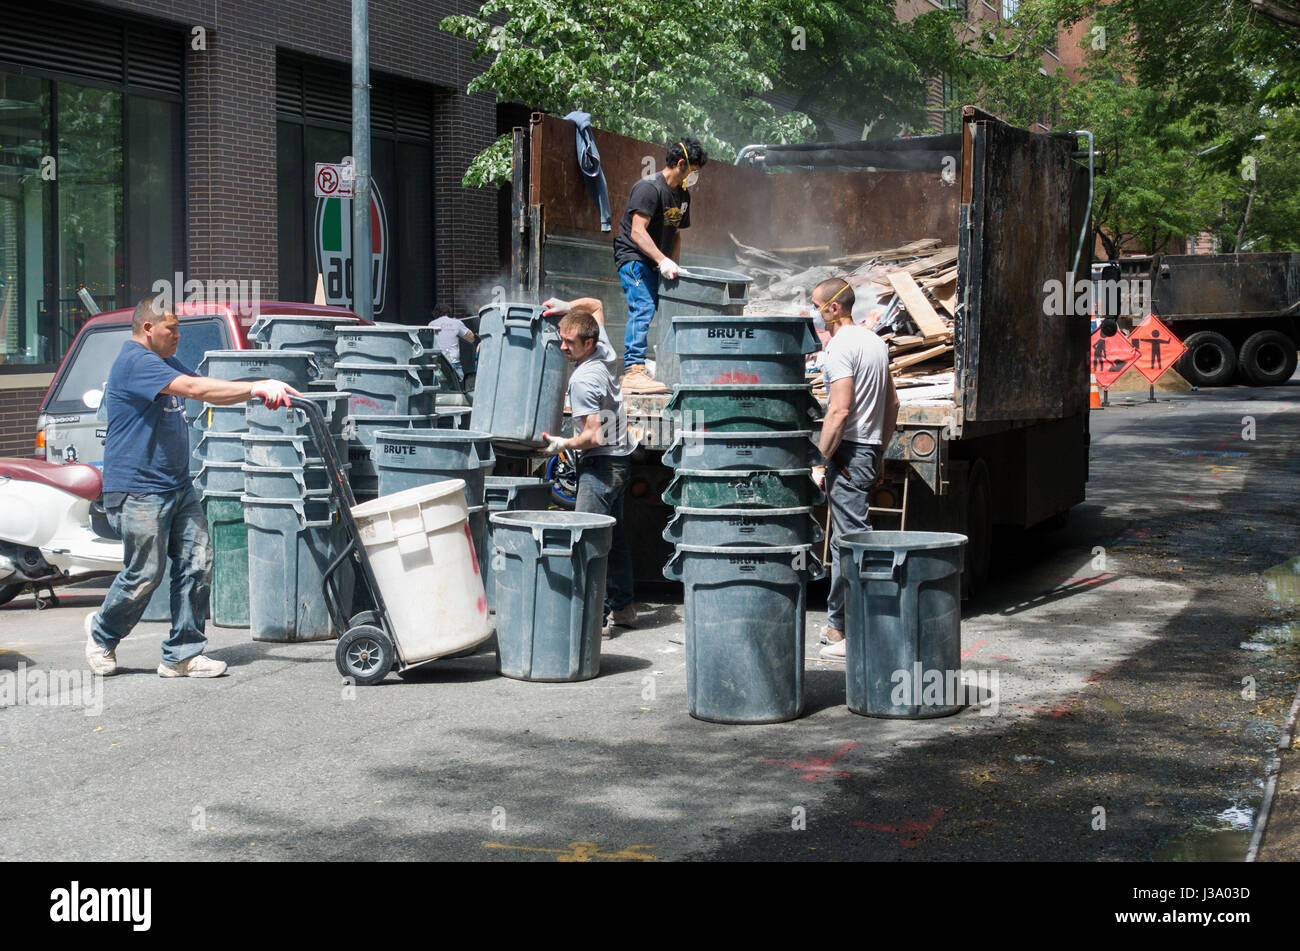 Four men removing debris from a construction site in large plastic bins n New York City - Stock Image